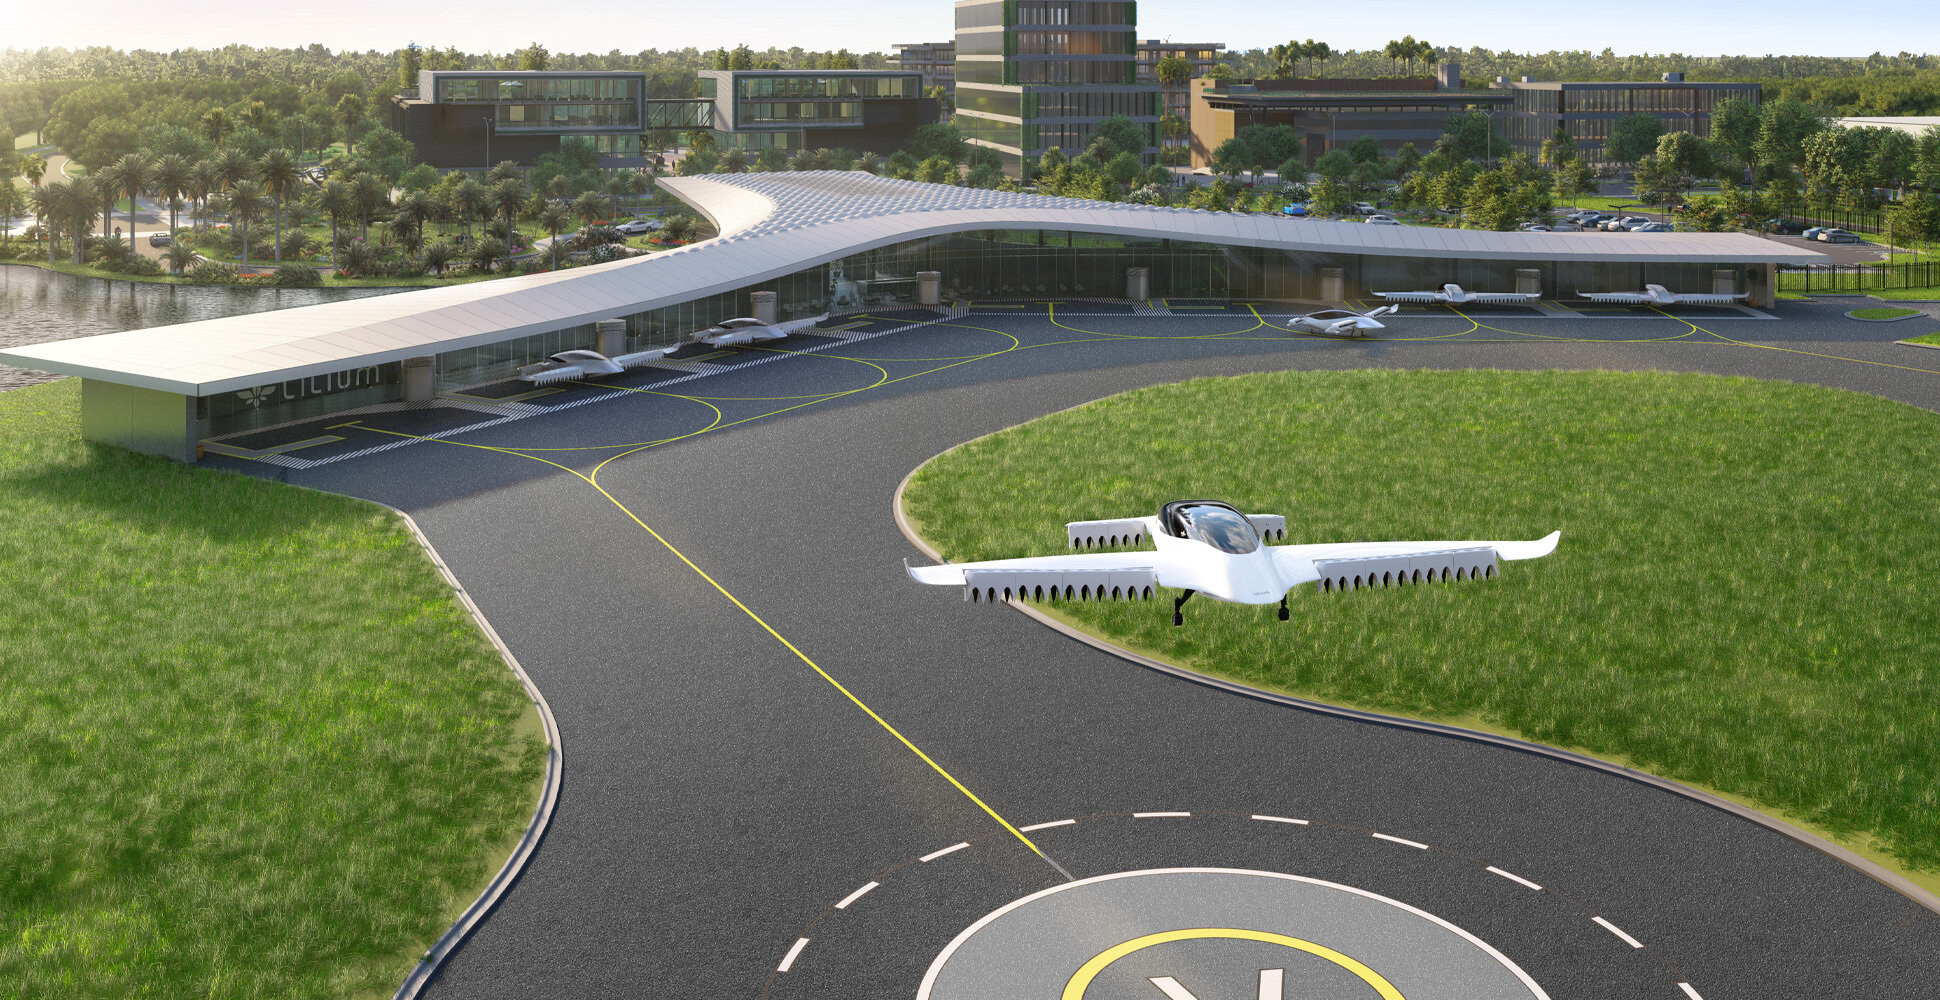 Orlando begins planning for air taxis, flying cars with NASA